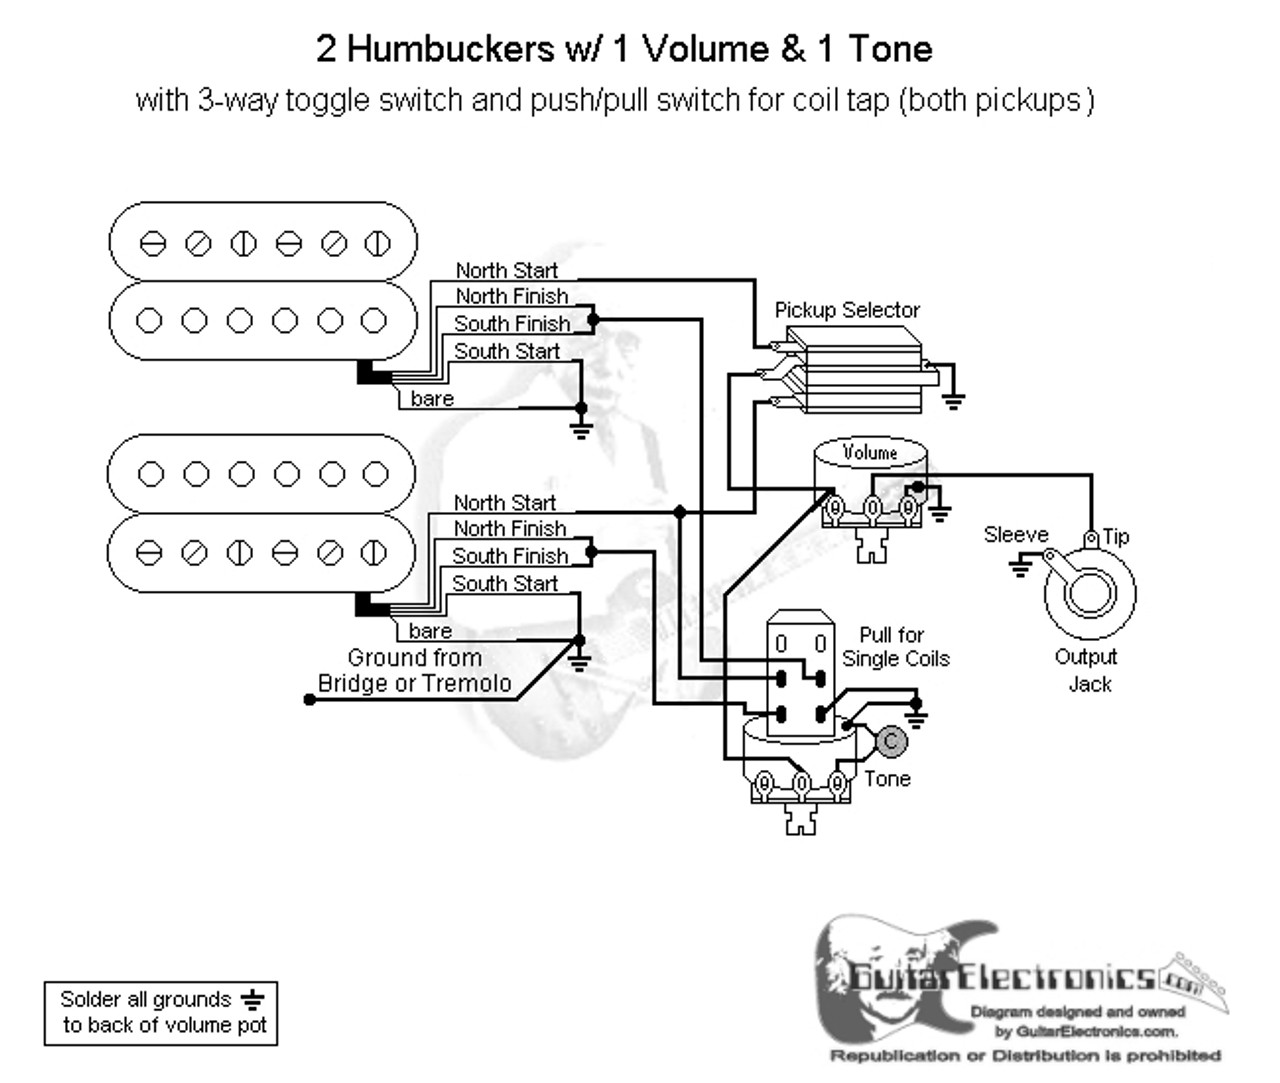 small resolution of 2 humbuckers 3 way toggle switch 1 volume 1 tone coil tap model wiring diagram wd2hh3t11 01 45715